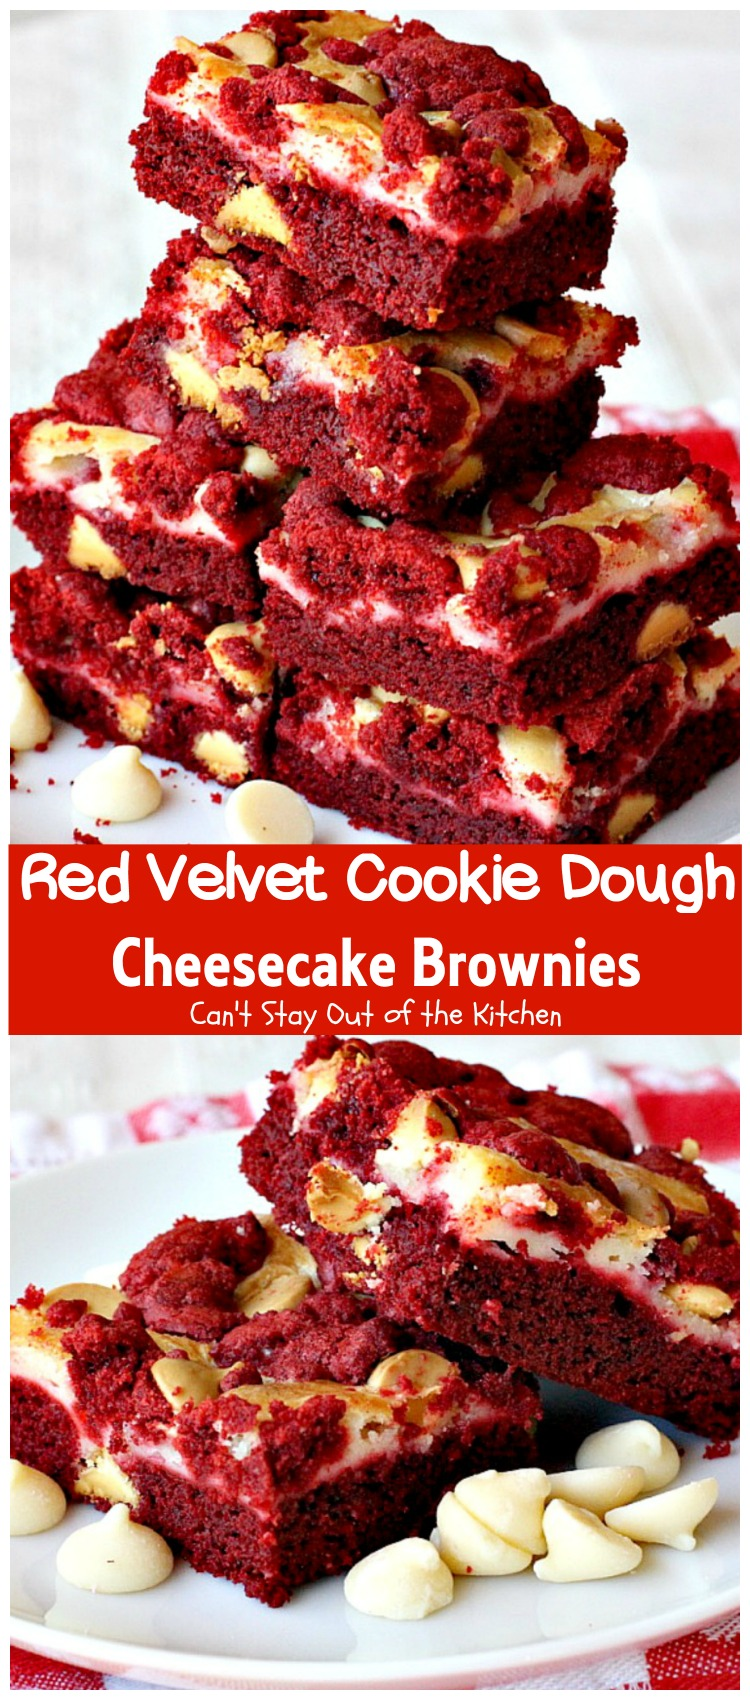 Red Velvet Cherry Chocolate Brownies - Can't Stay Out of the Kitchen